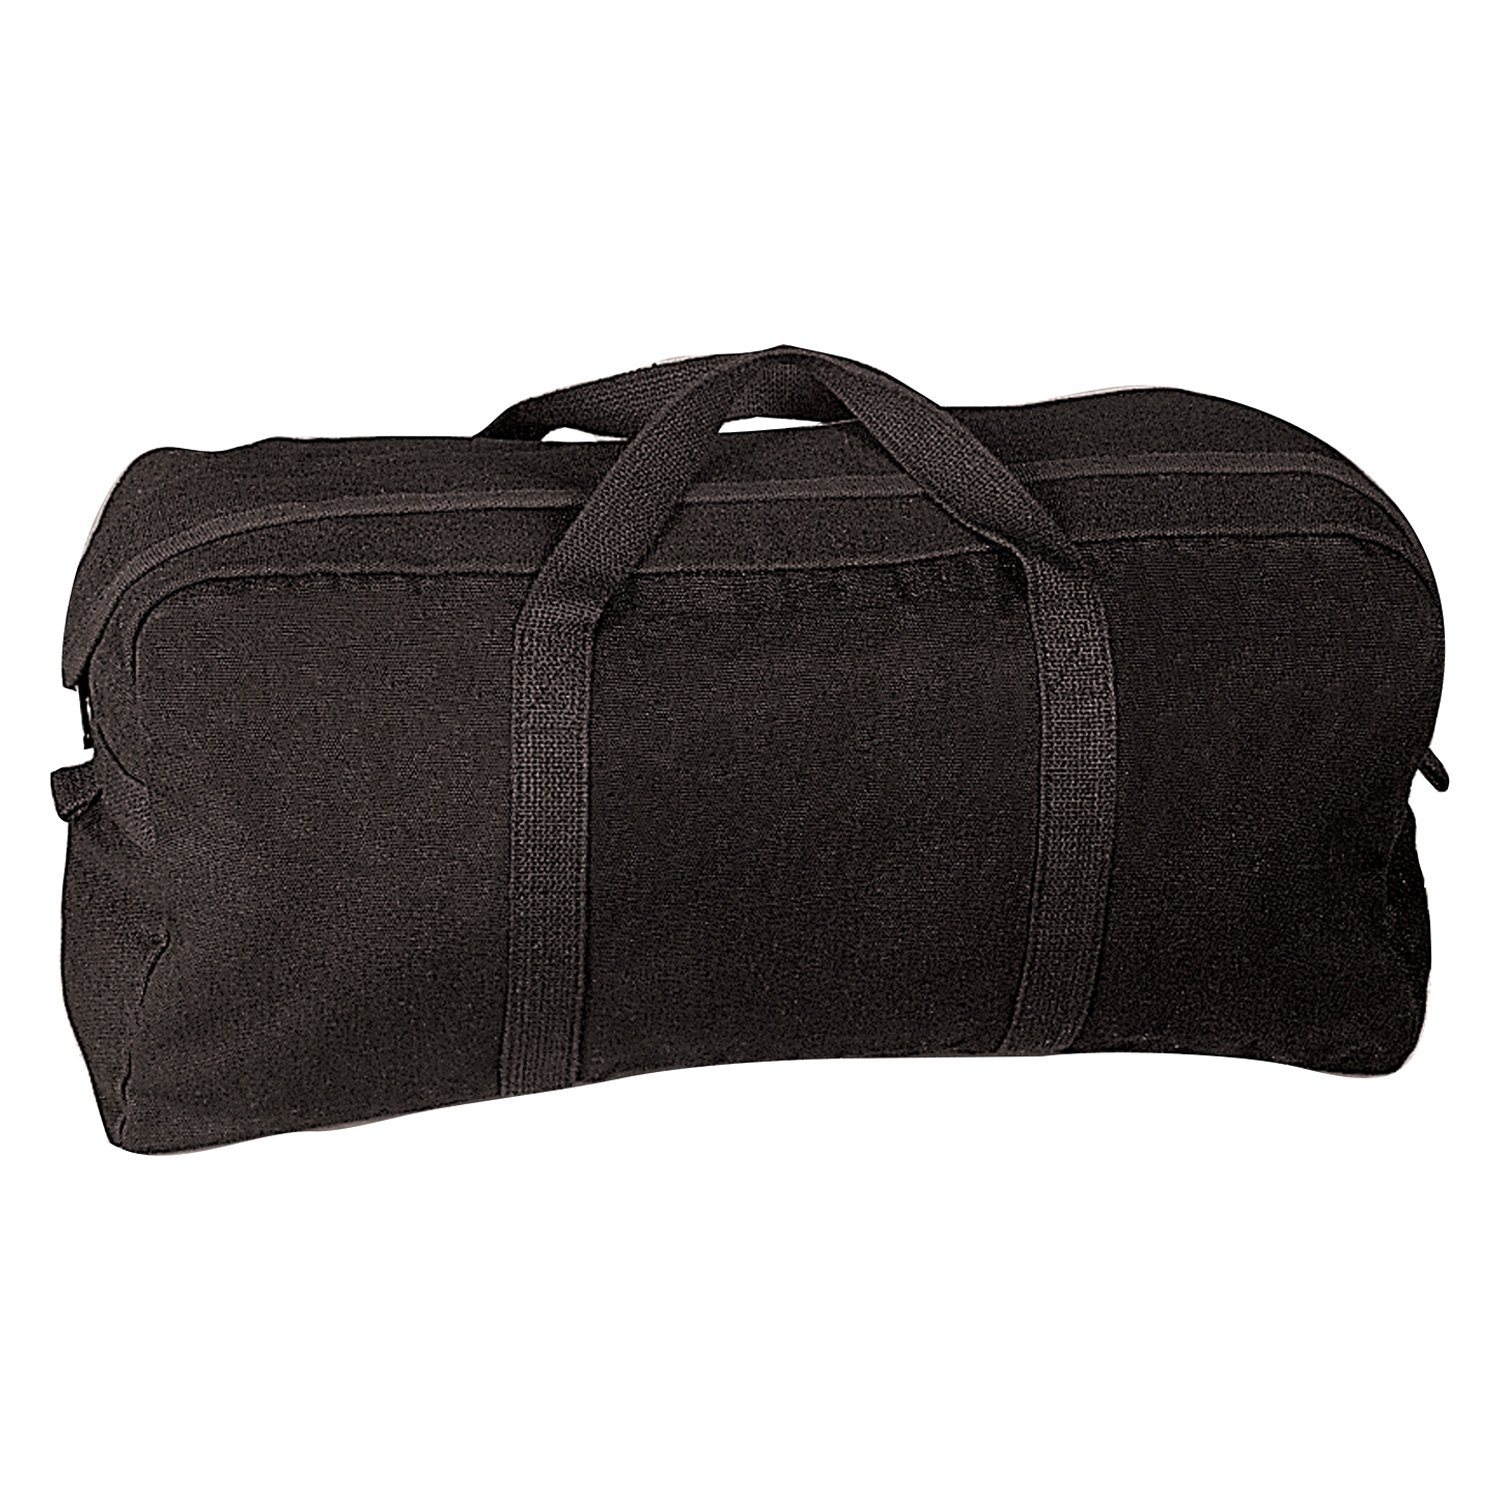 Rothco® 8183 - Black Canvas Tanker Style Tool Bag